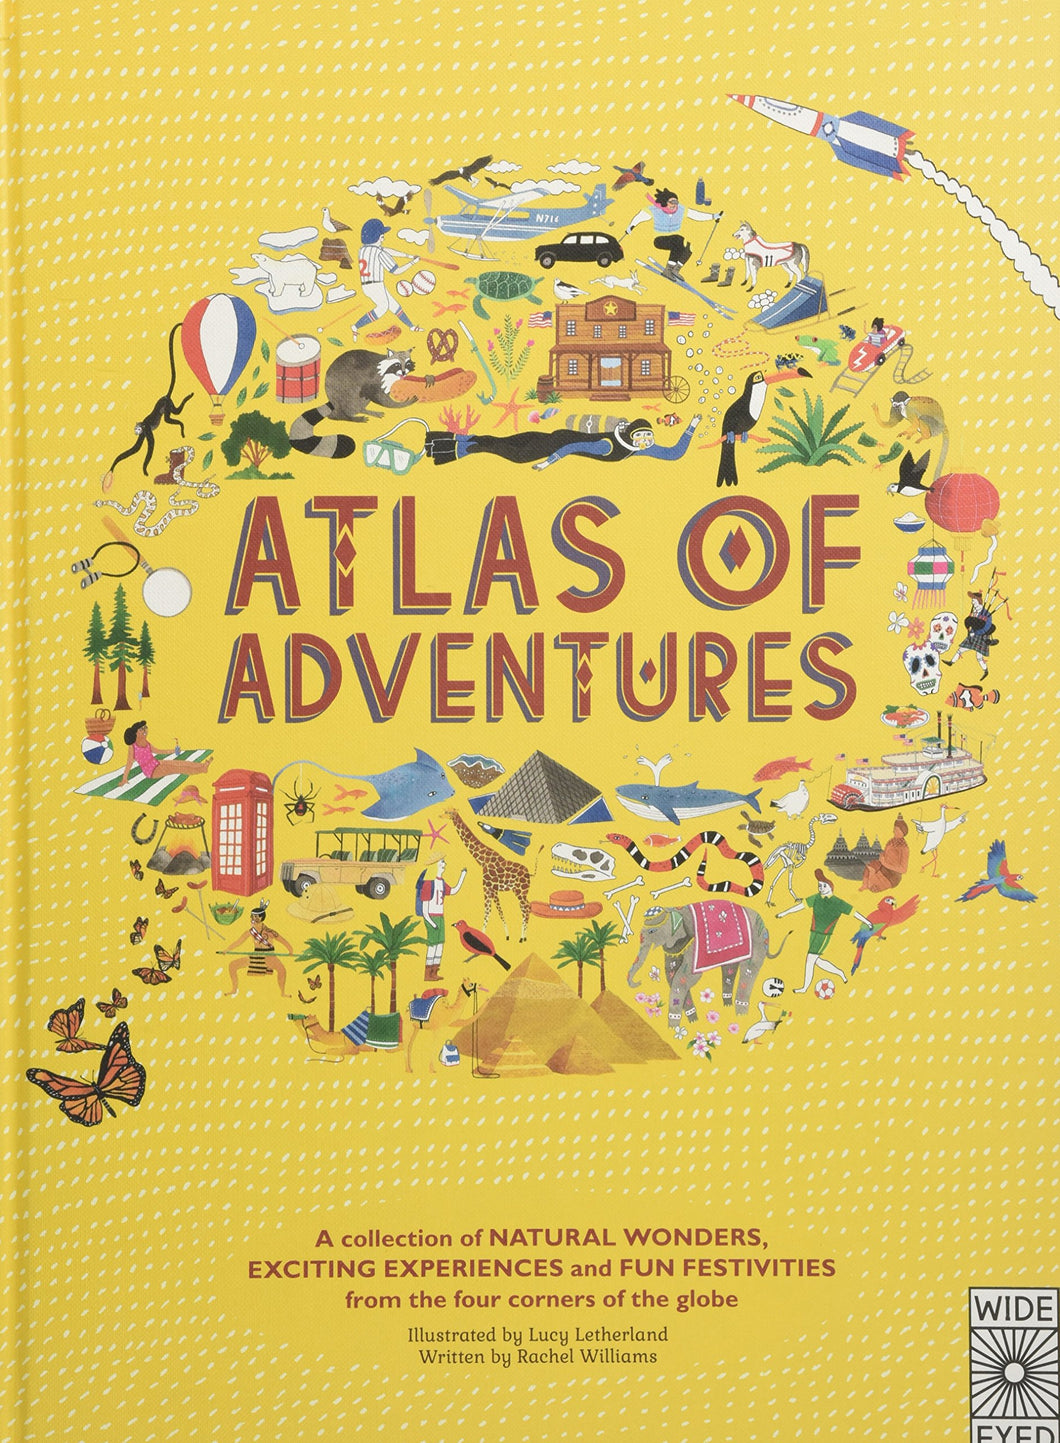 Atlas Adventures